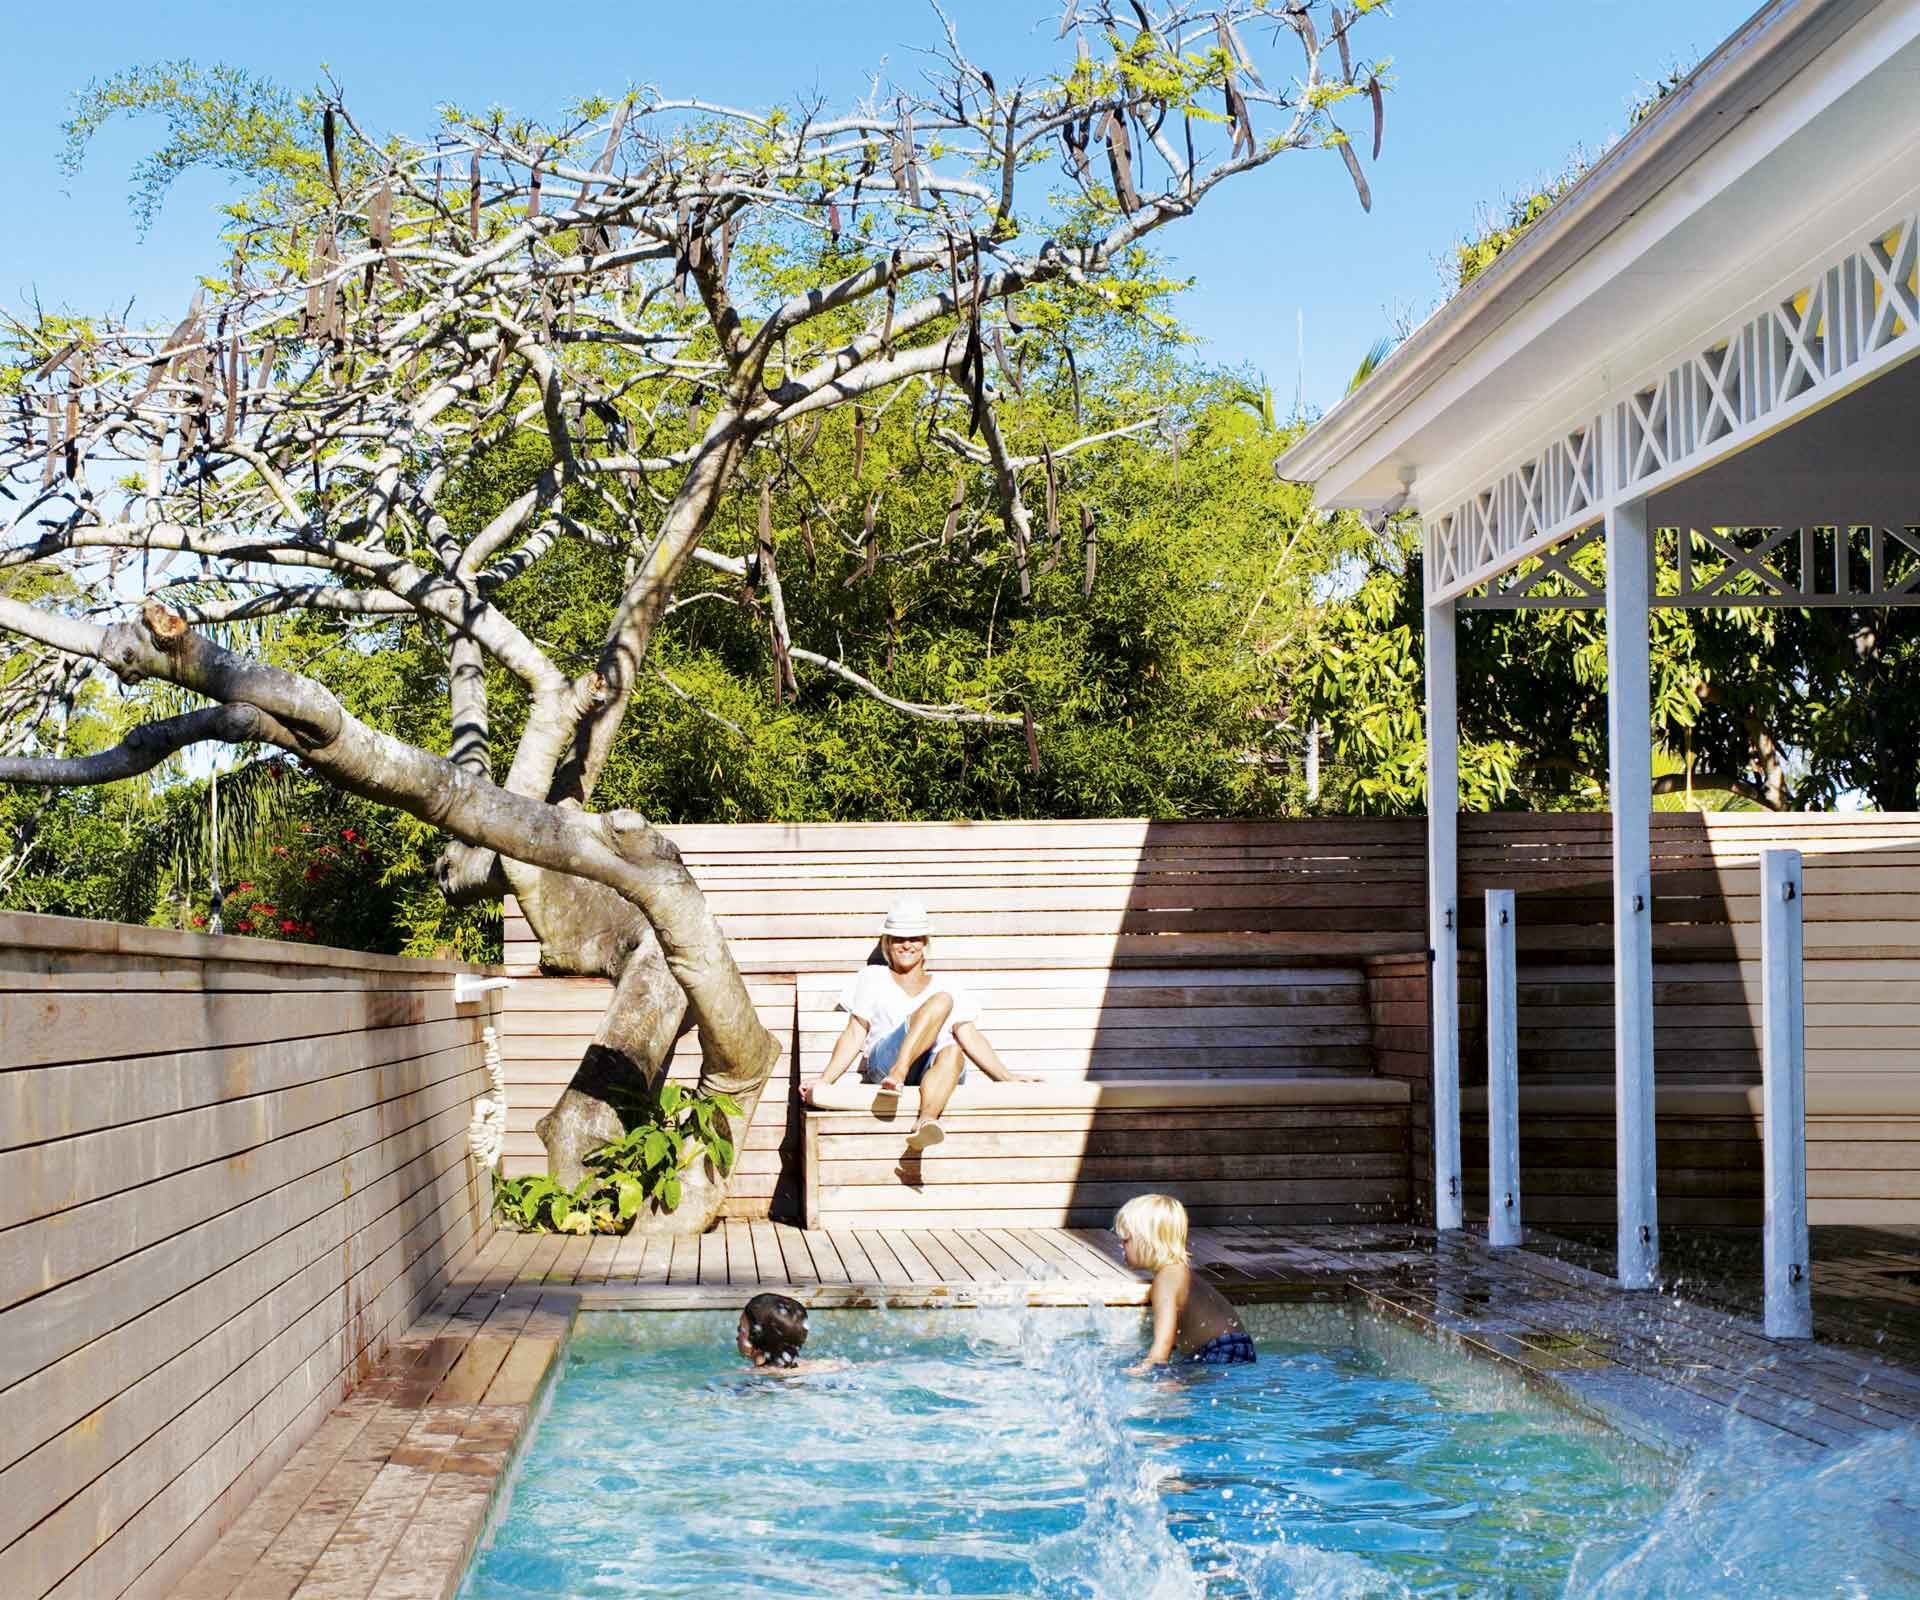 A Byron Bay beach house renovation that's full of charm | Inside Out